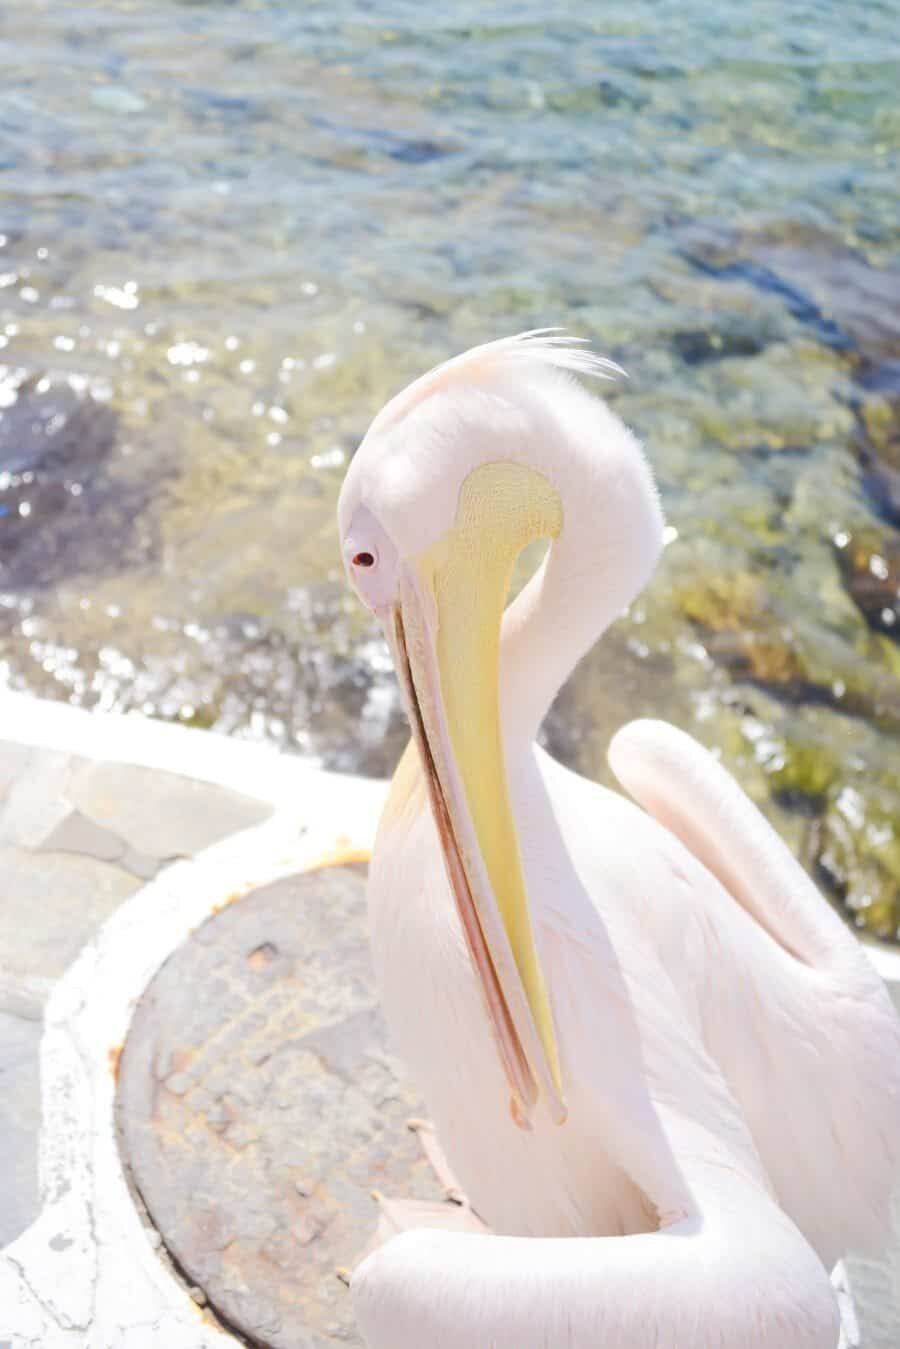 Mykonos Petros the Pelican - The Best photography locations by The Wandering Lens